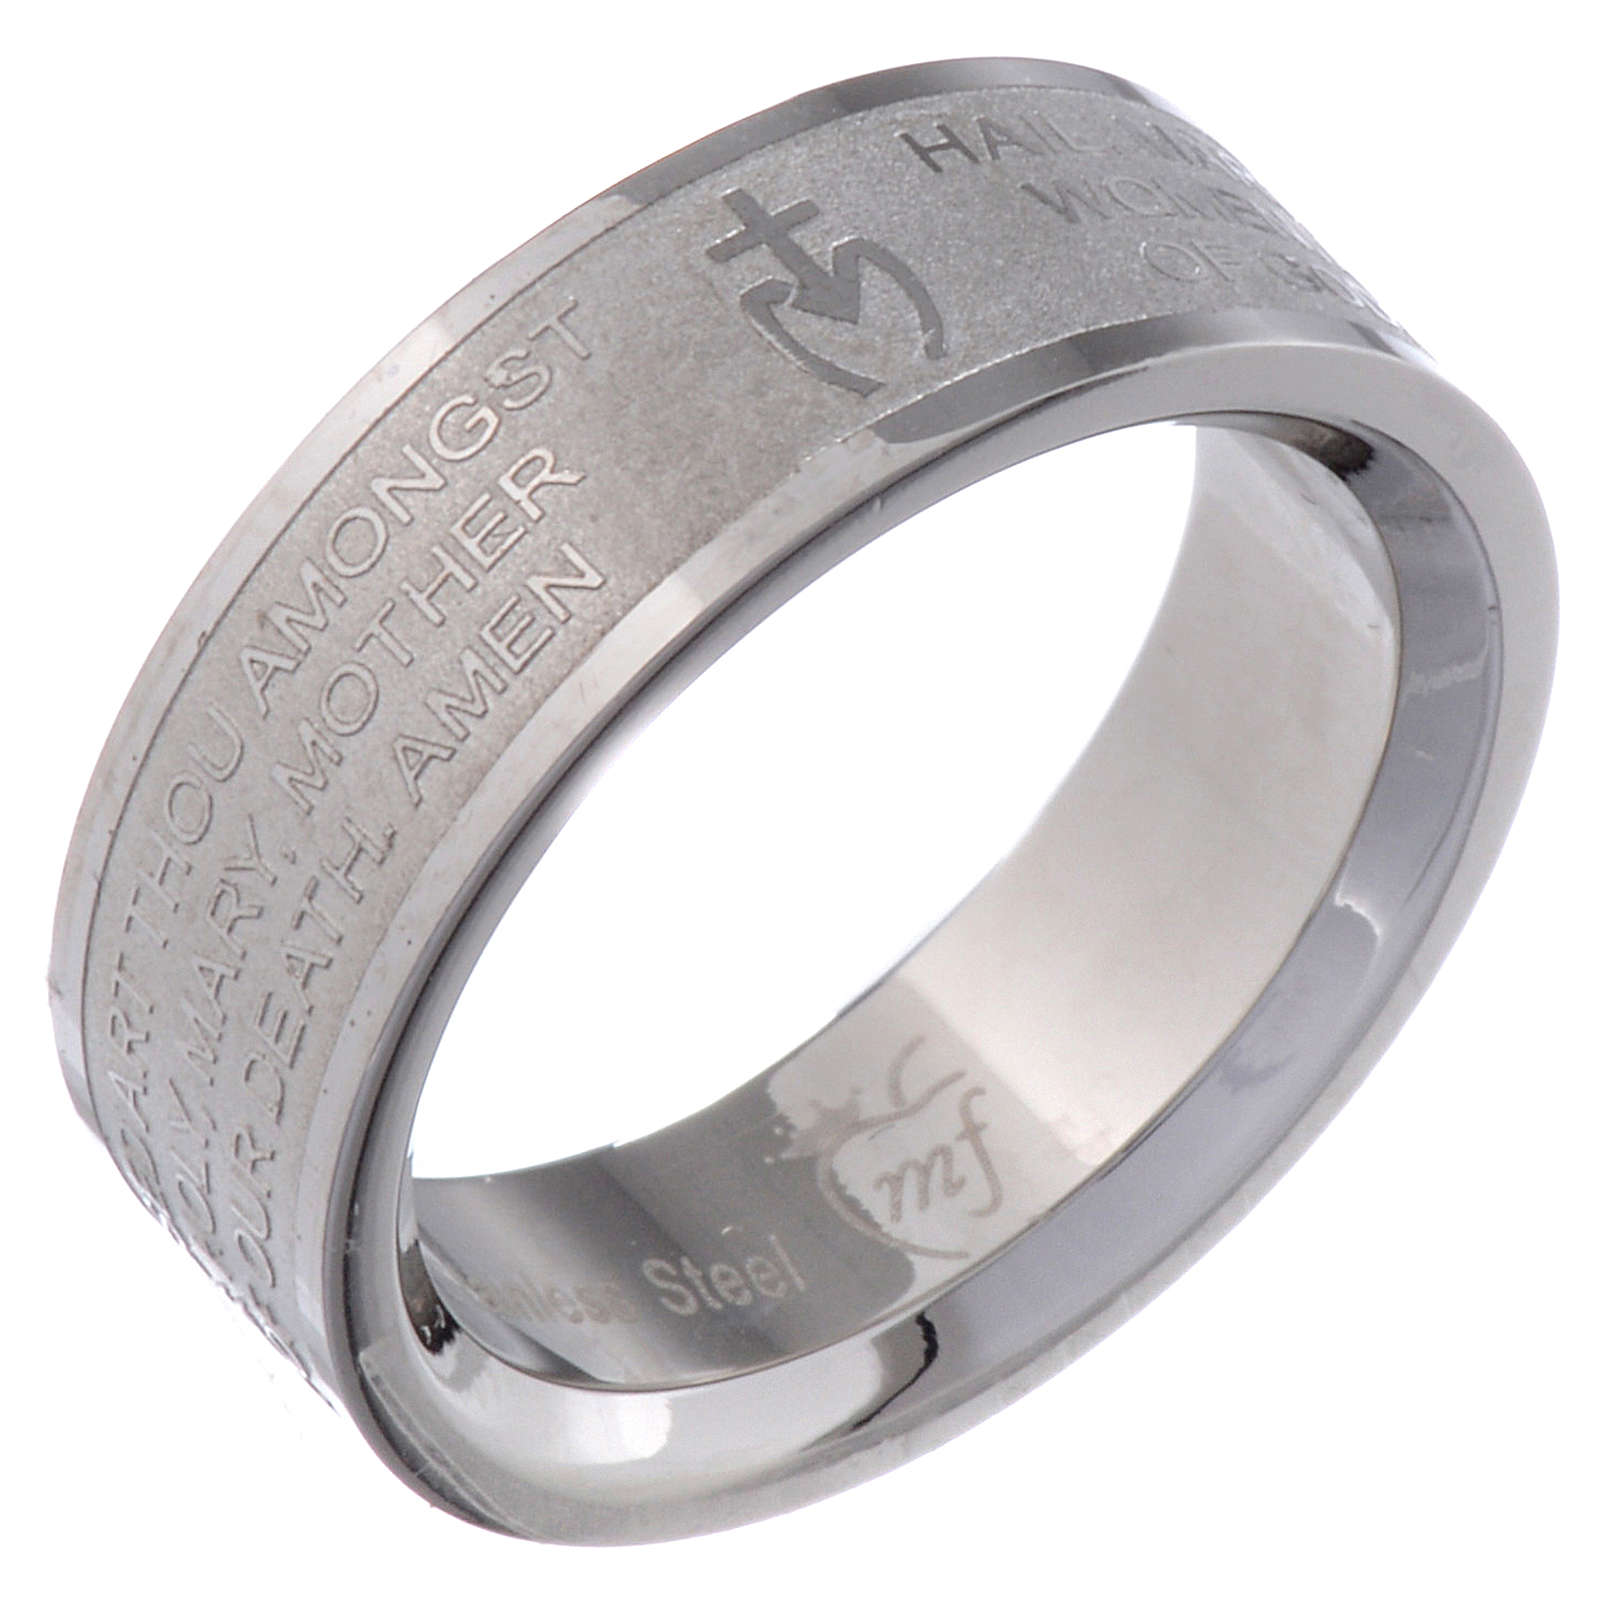 Prayer ring HAIL MARY in stainless steel - ENGLISH LUX 3